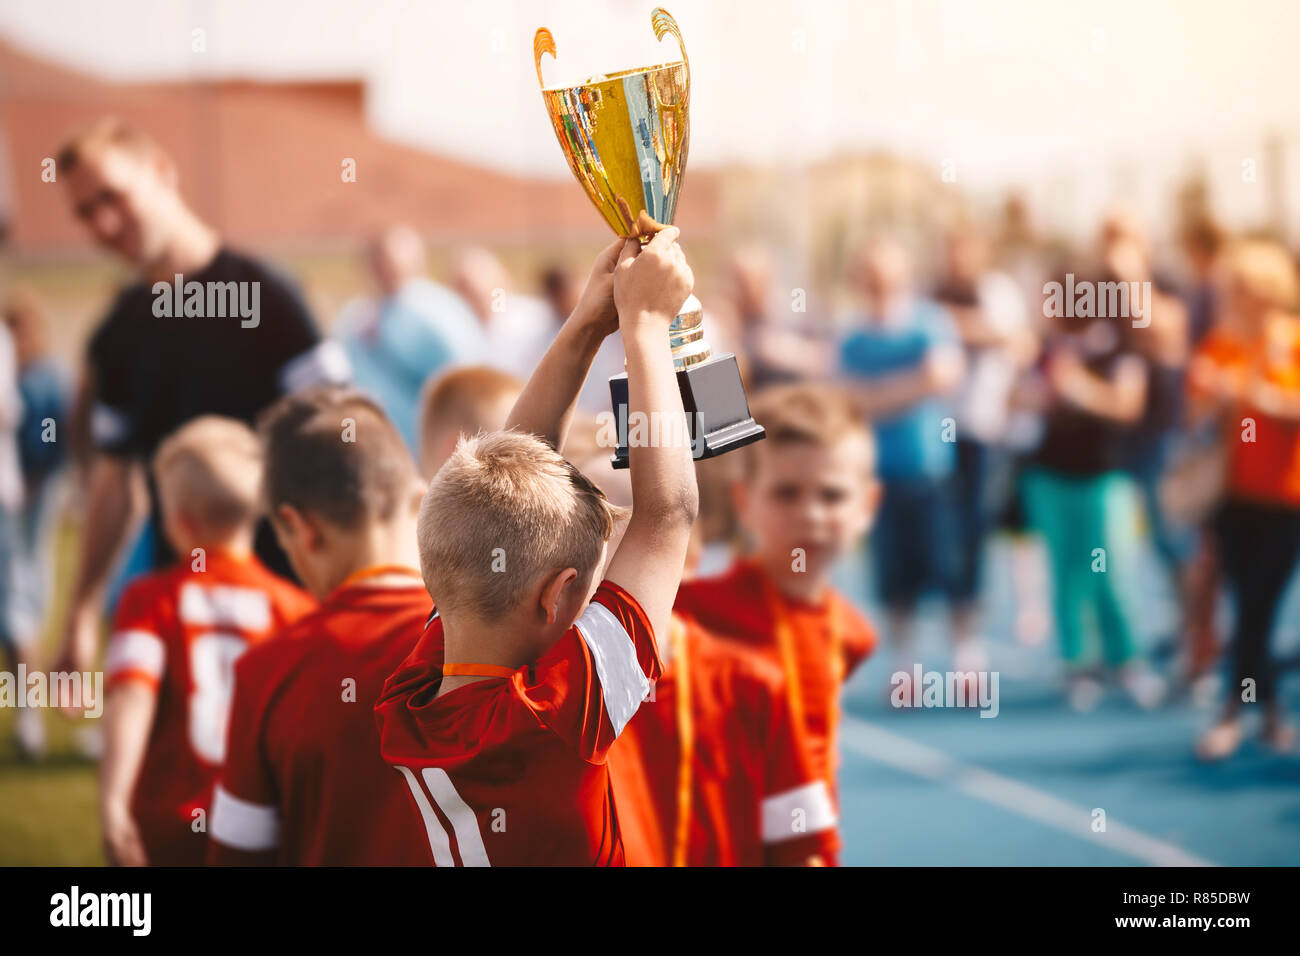 Kids Winning Sports Competition. Children Soccer Team with Trophy. Boys Celebrating Football Championship in Primary School Fooutball Tournament - Stock Image